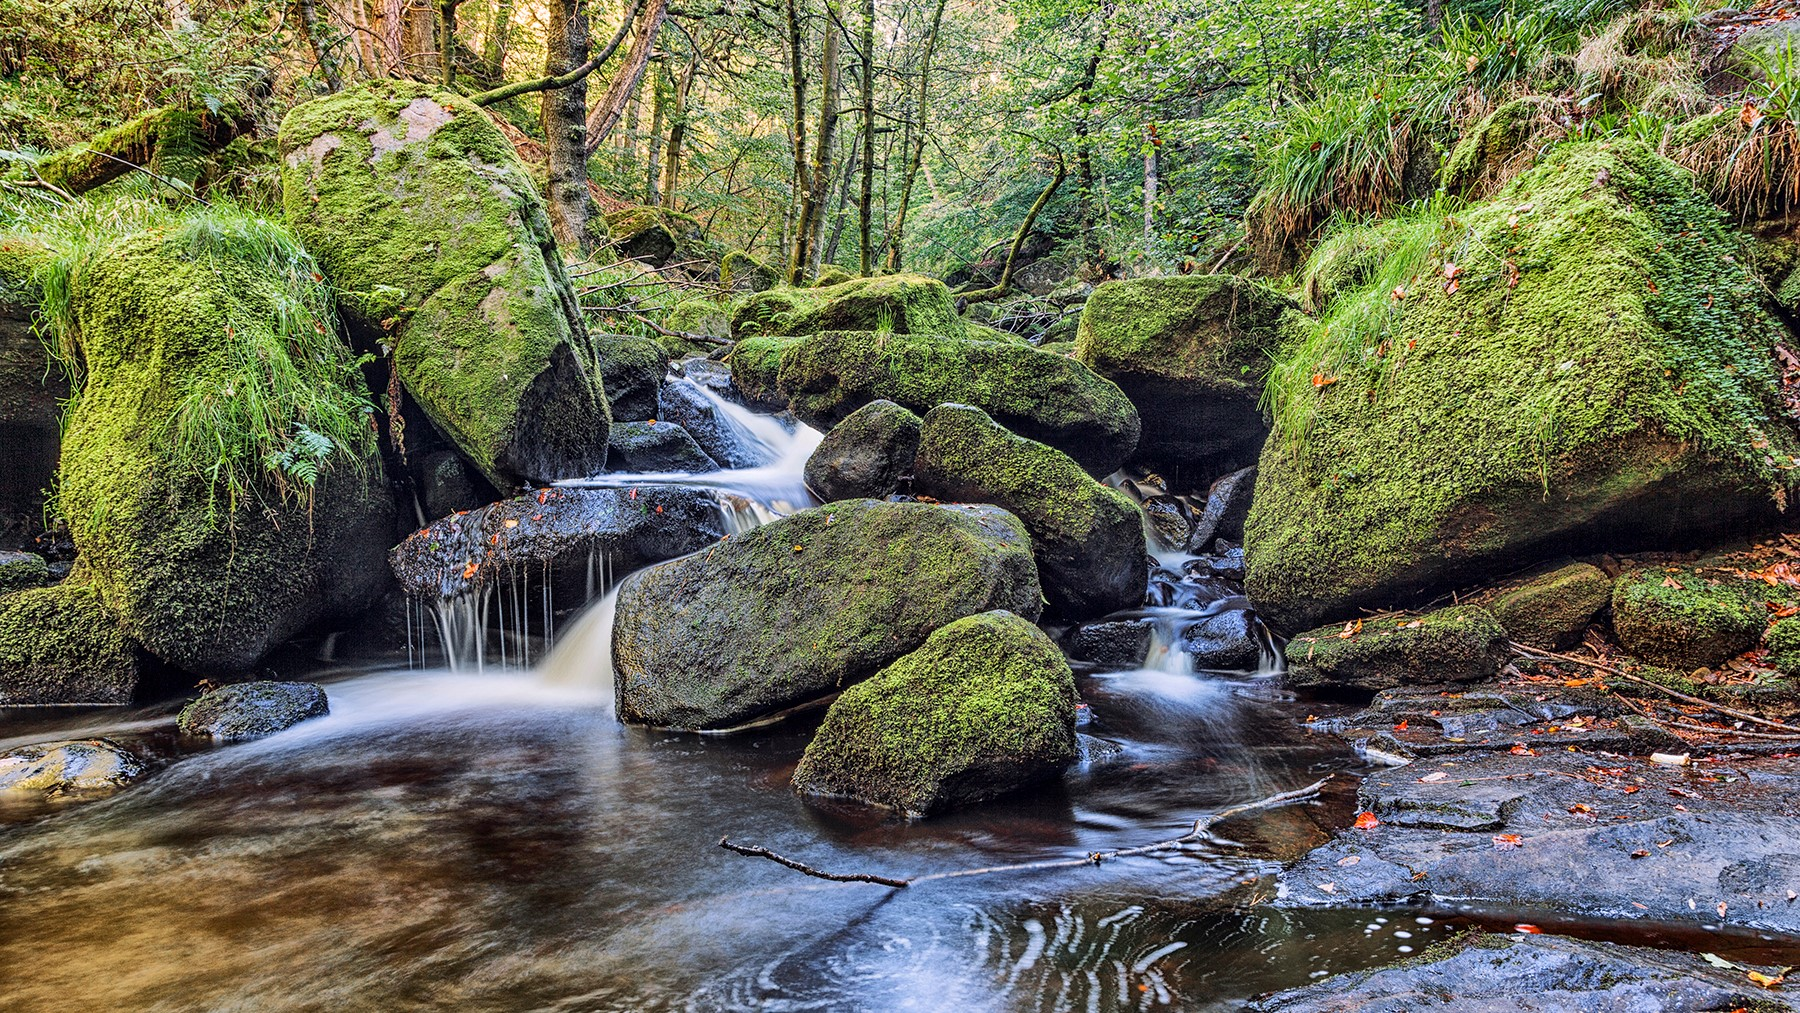 275 AG Open Good Morning Padley Gorge